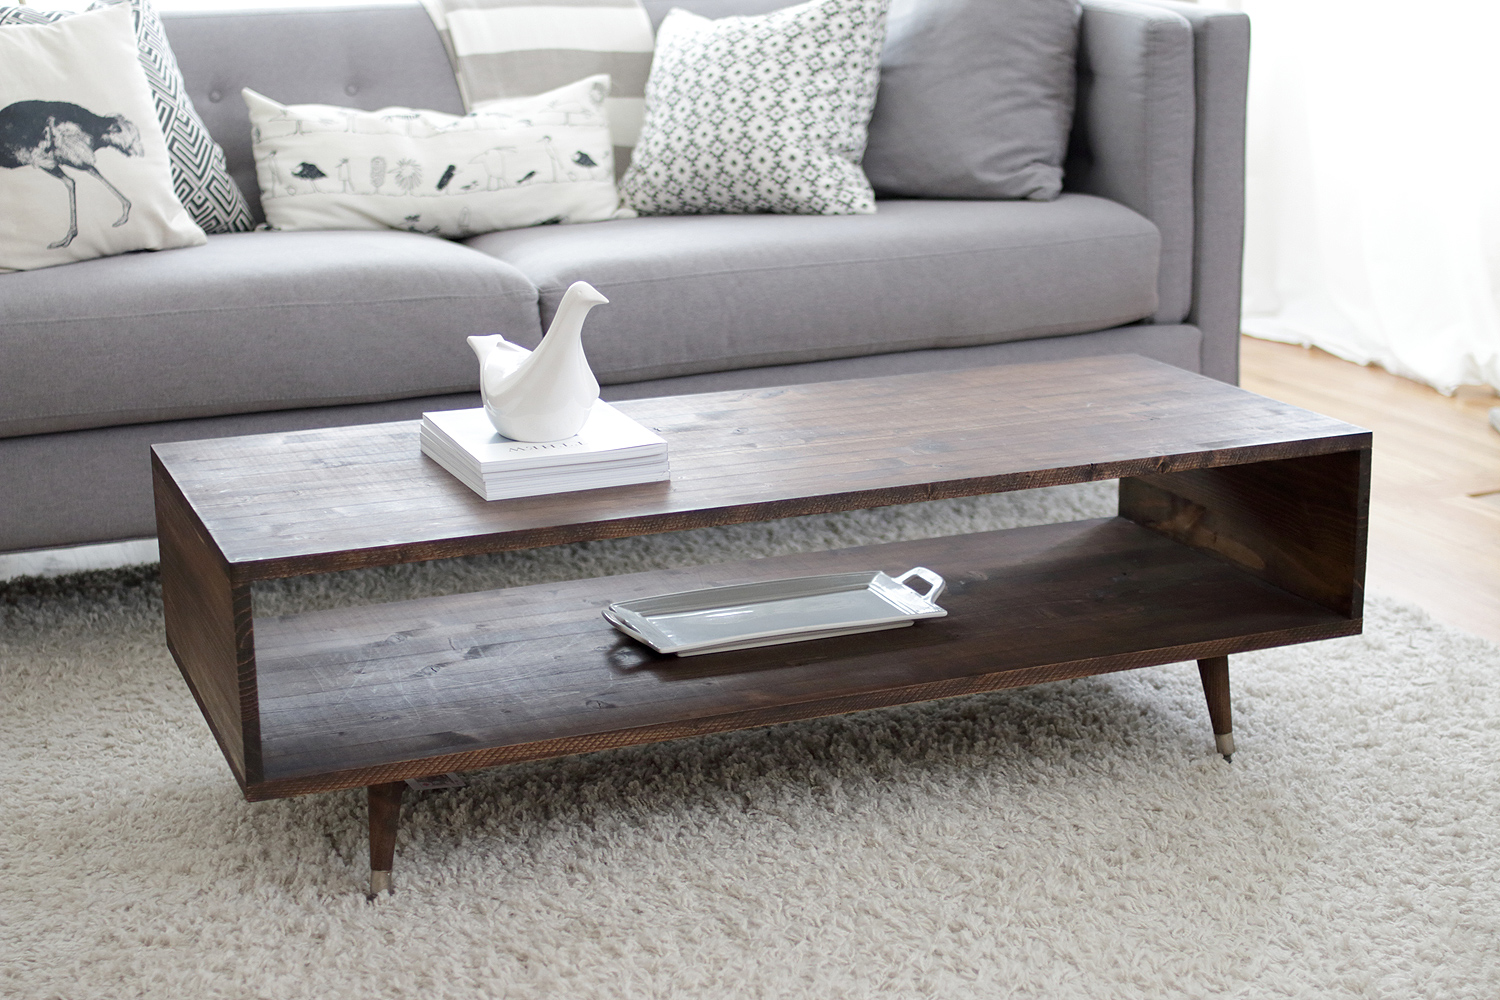 Build Your Own End Table Build Your Own Mid Century Modern Coffee Table For 60